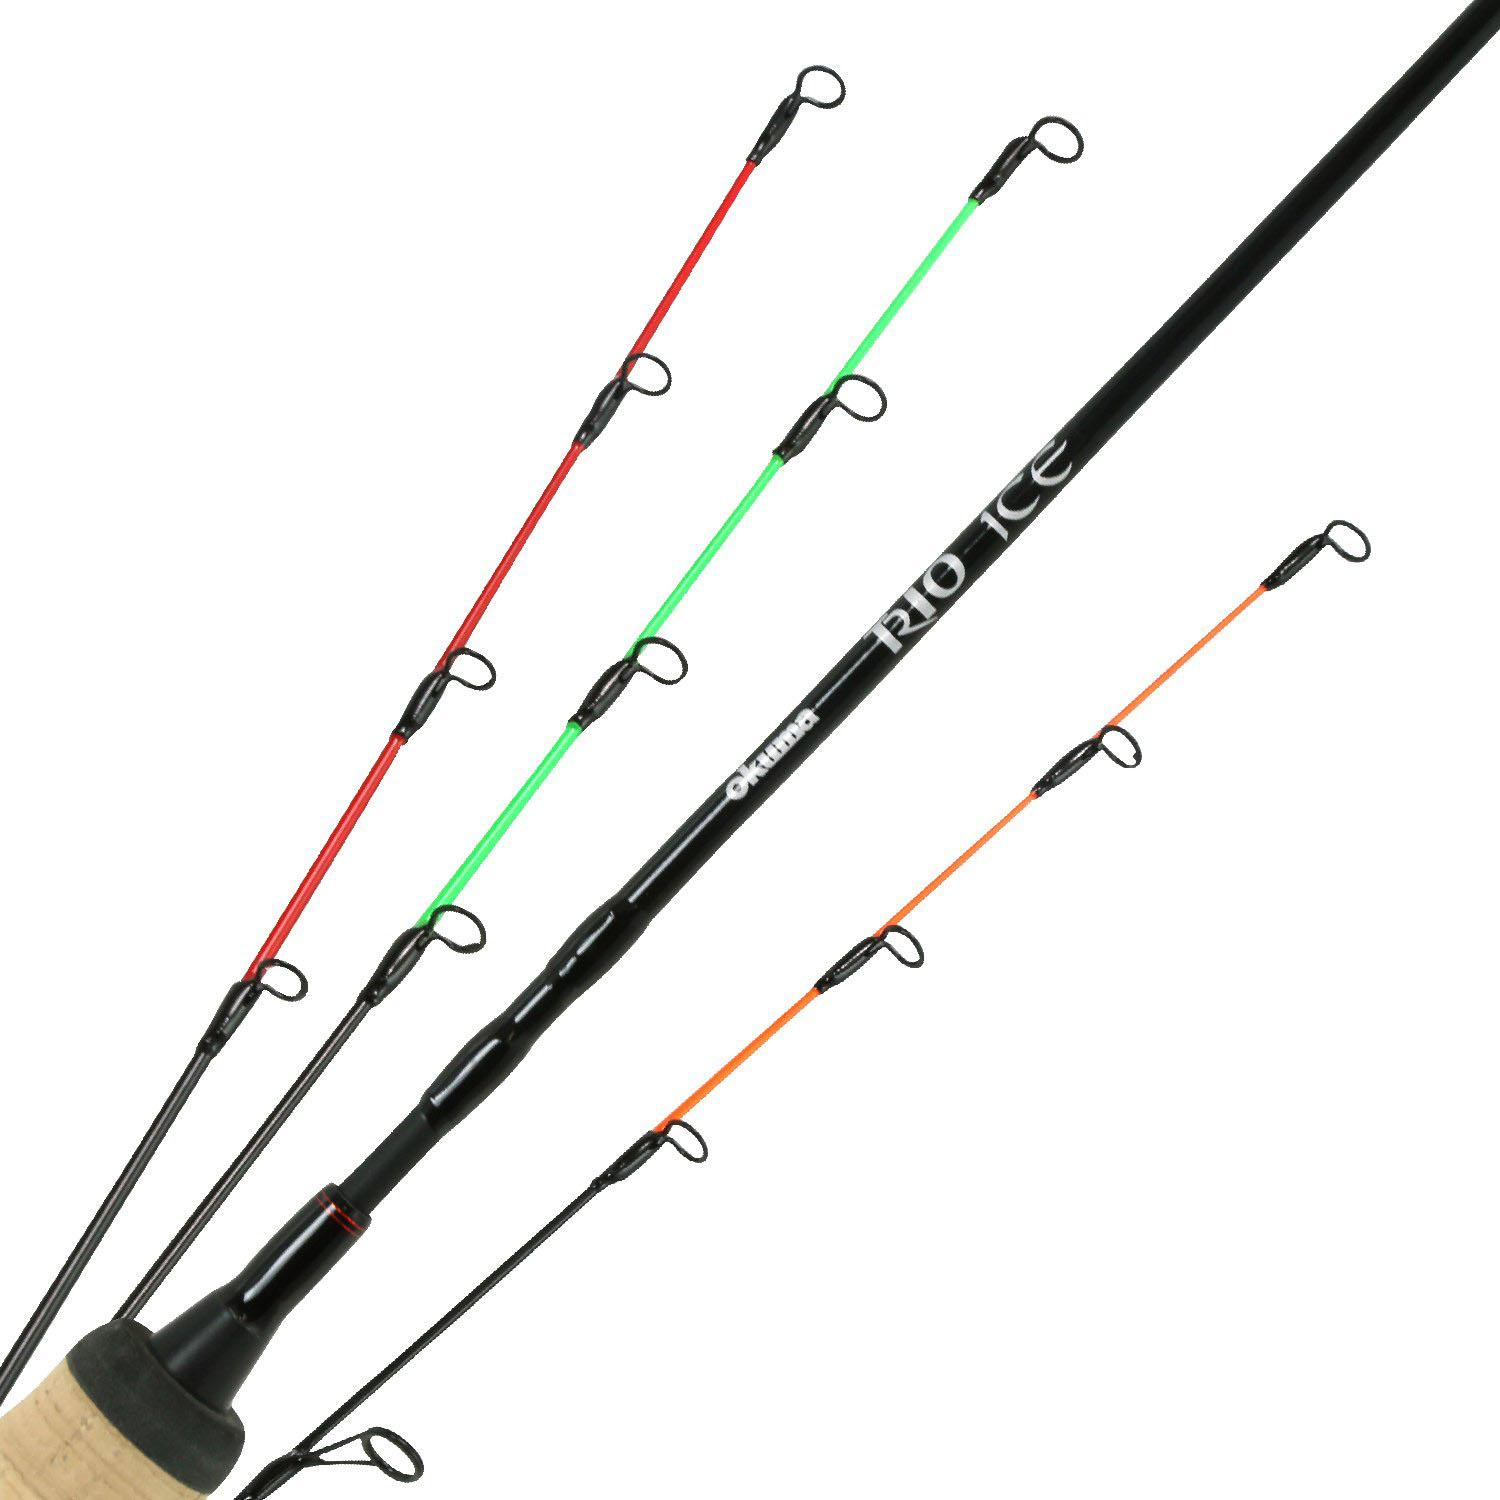 Okuma Trio Ice Spinning Rod Model TR-S-ICE-1